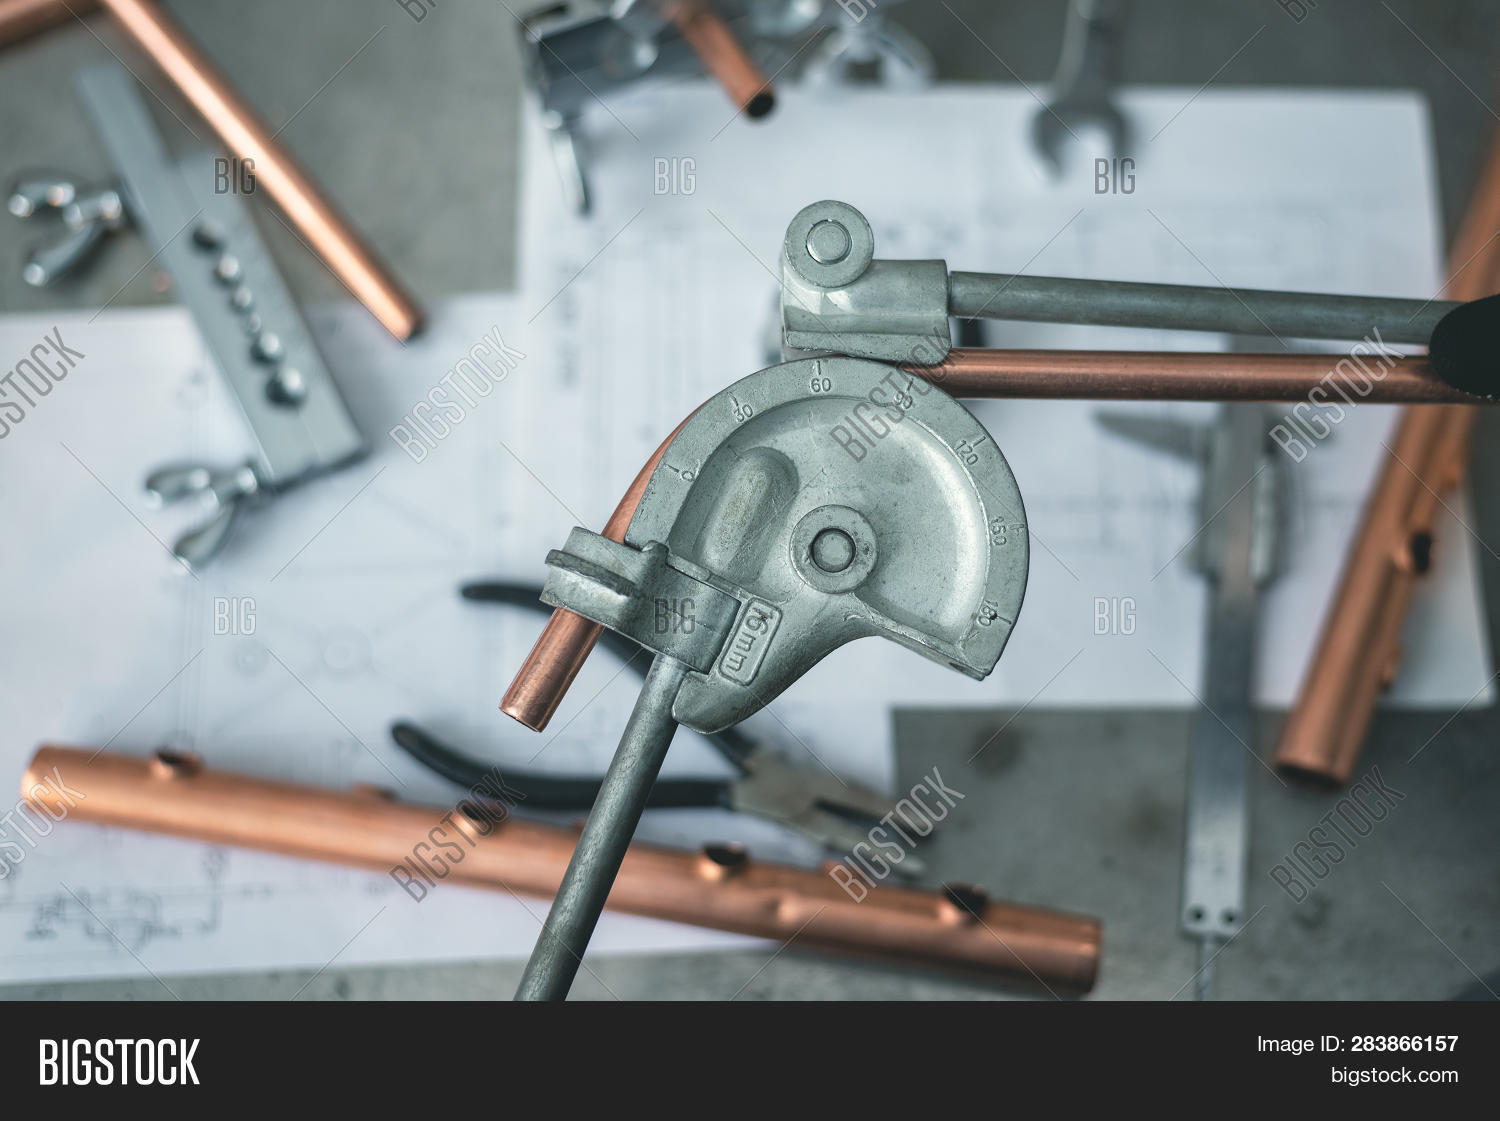 Pipe Bender Tool Hands Image & Photo (Free Trial) | Bigstock